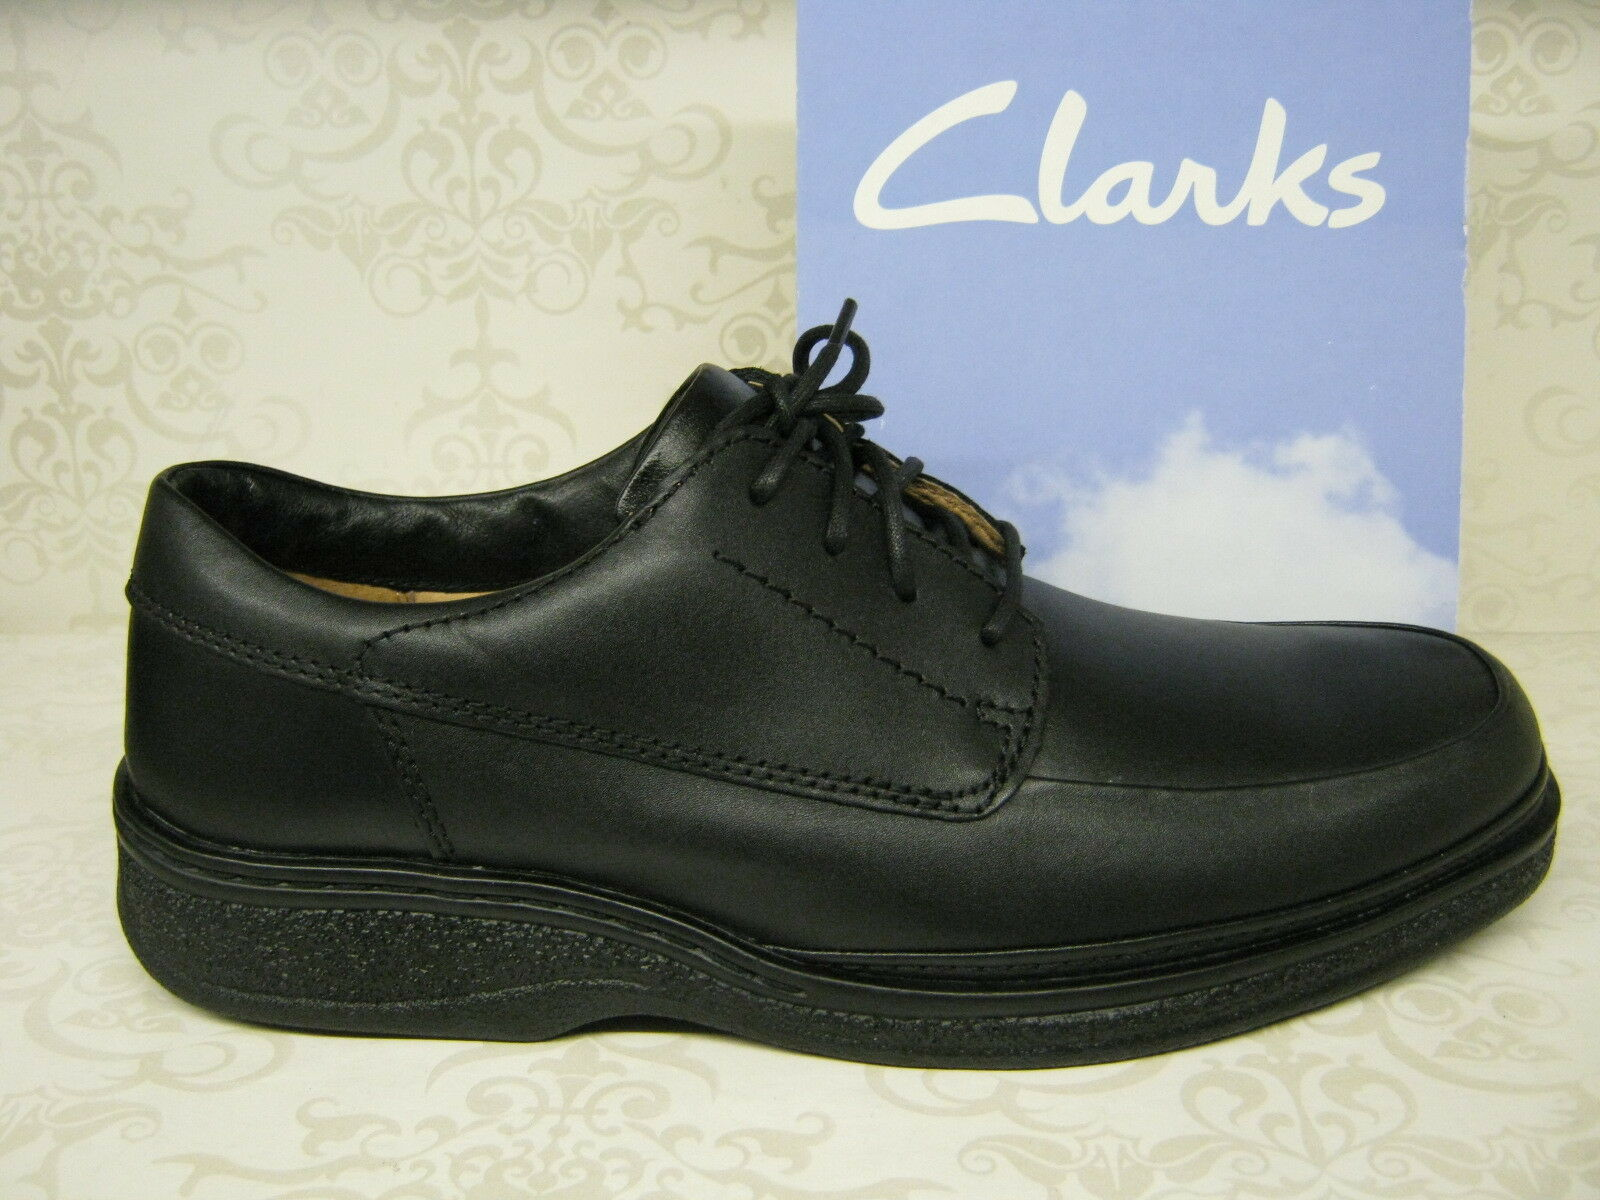 Clarks Stonehill Up Pace schwarz Leder Lace Up Stonehill Schuhes WIDE Fit 110a27